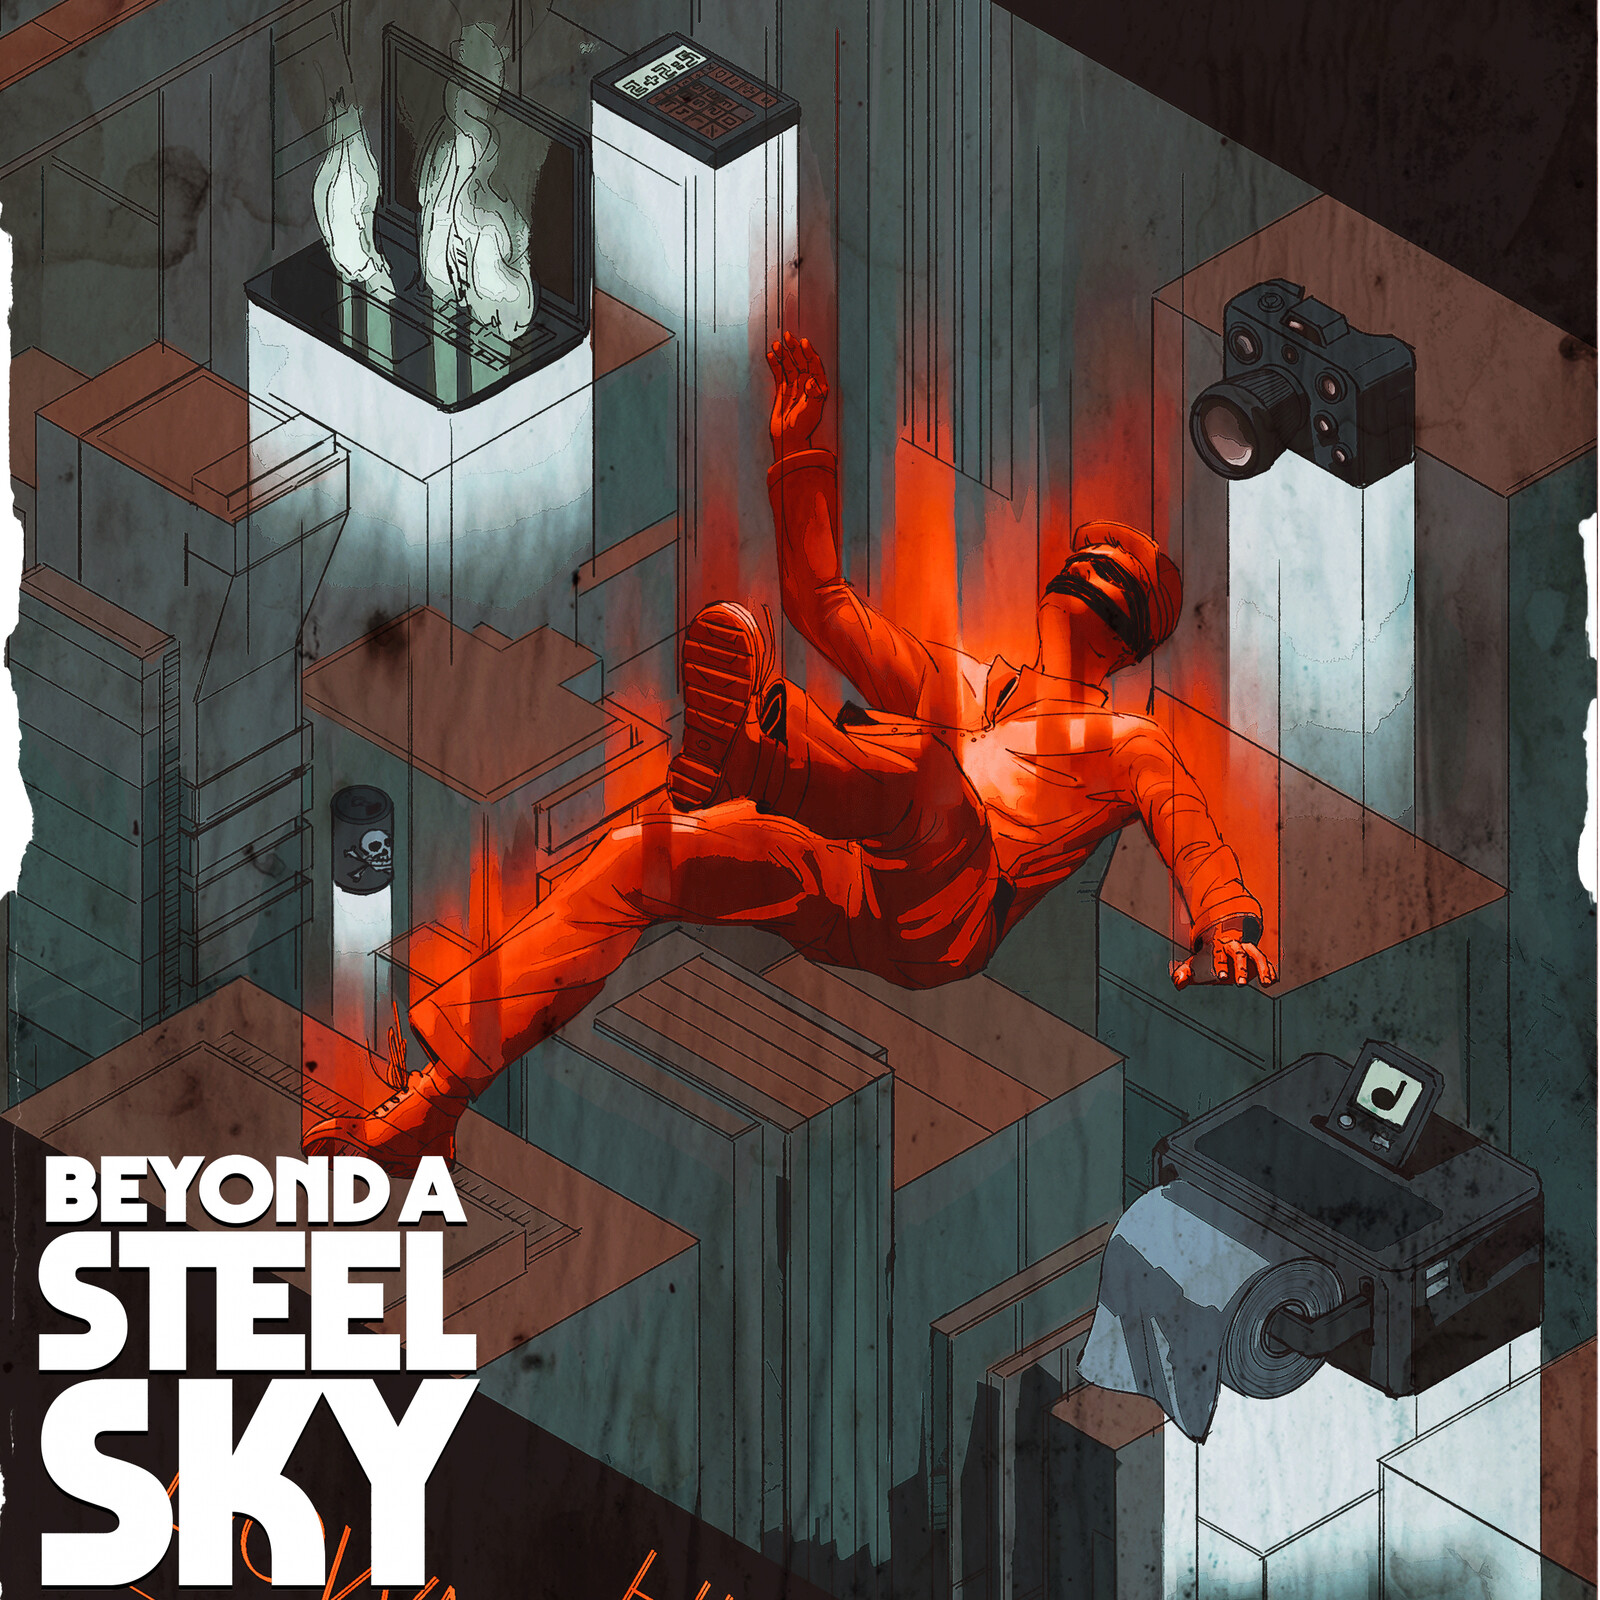 BEYOND A STEEL SKY: Graham's posters